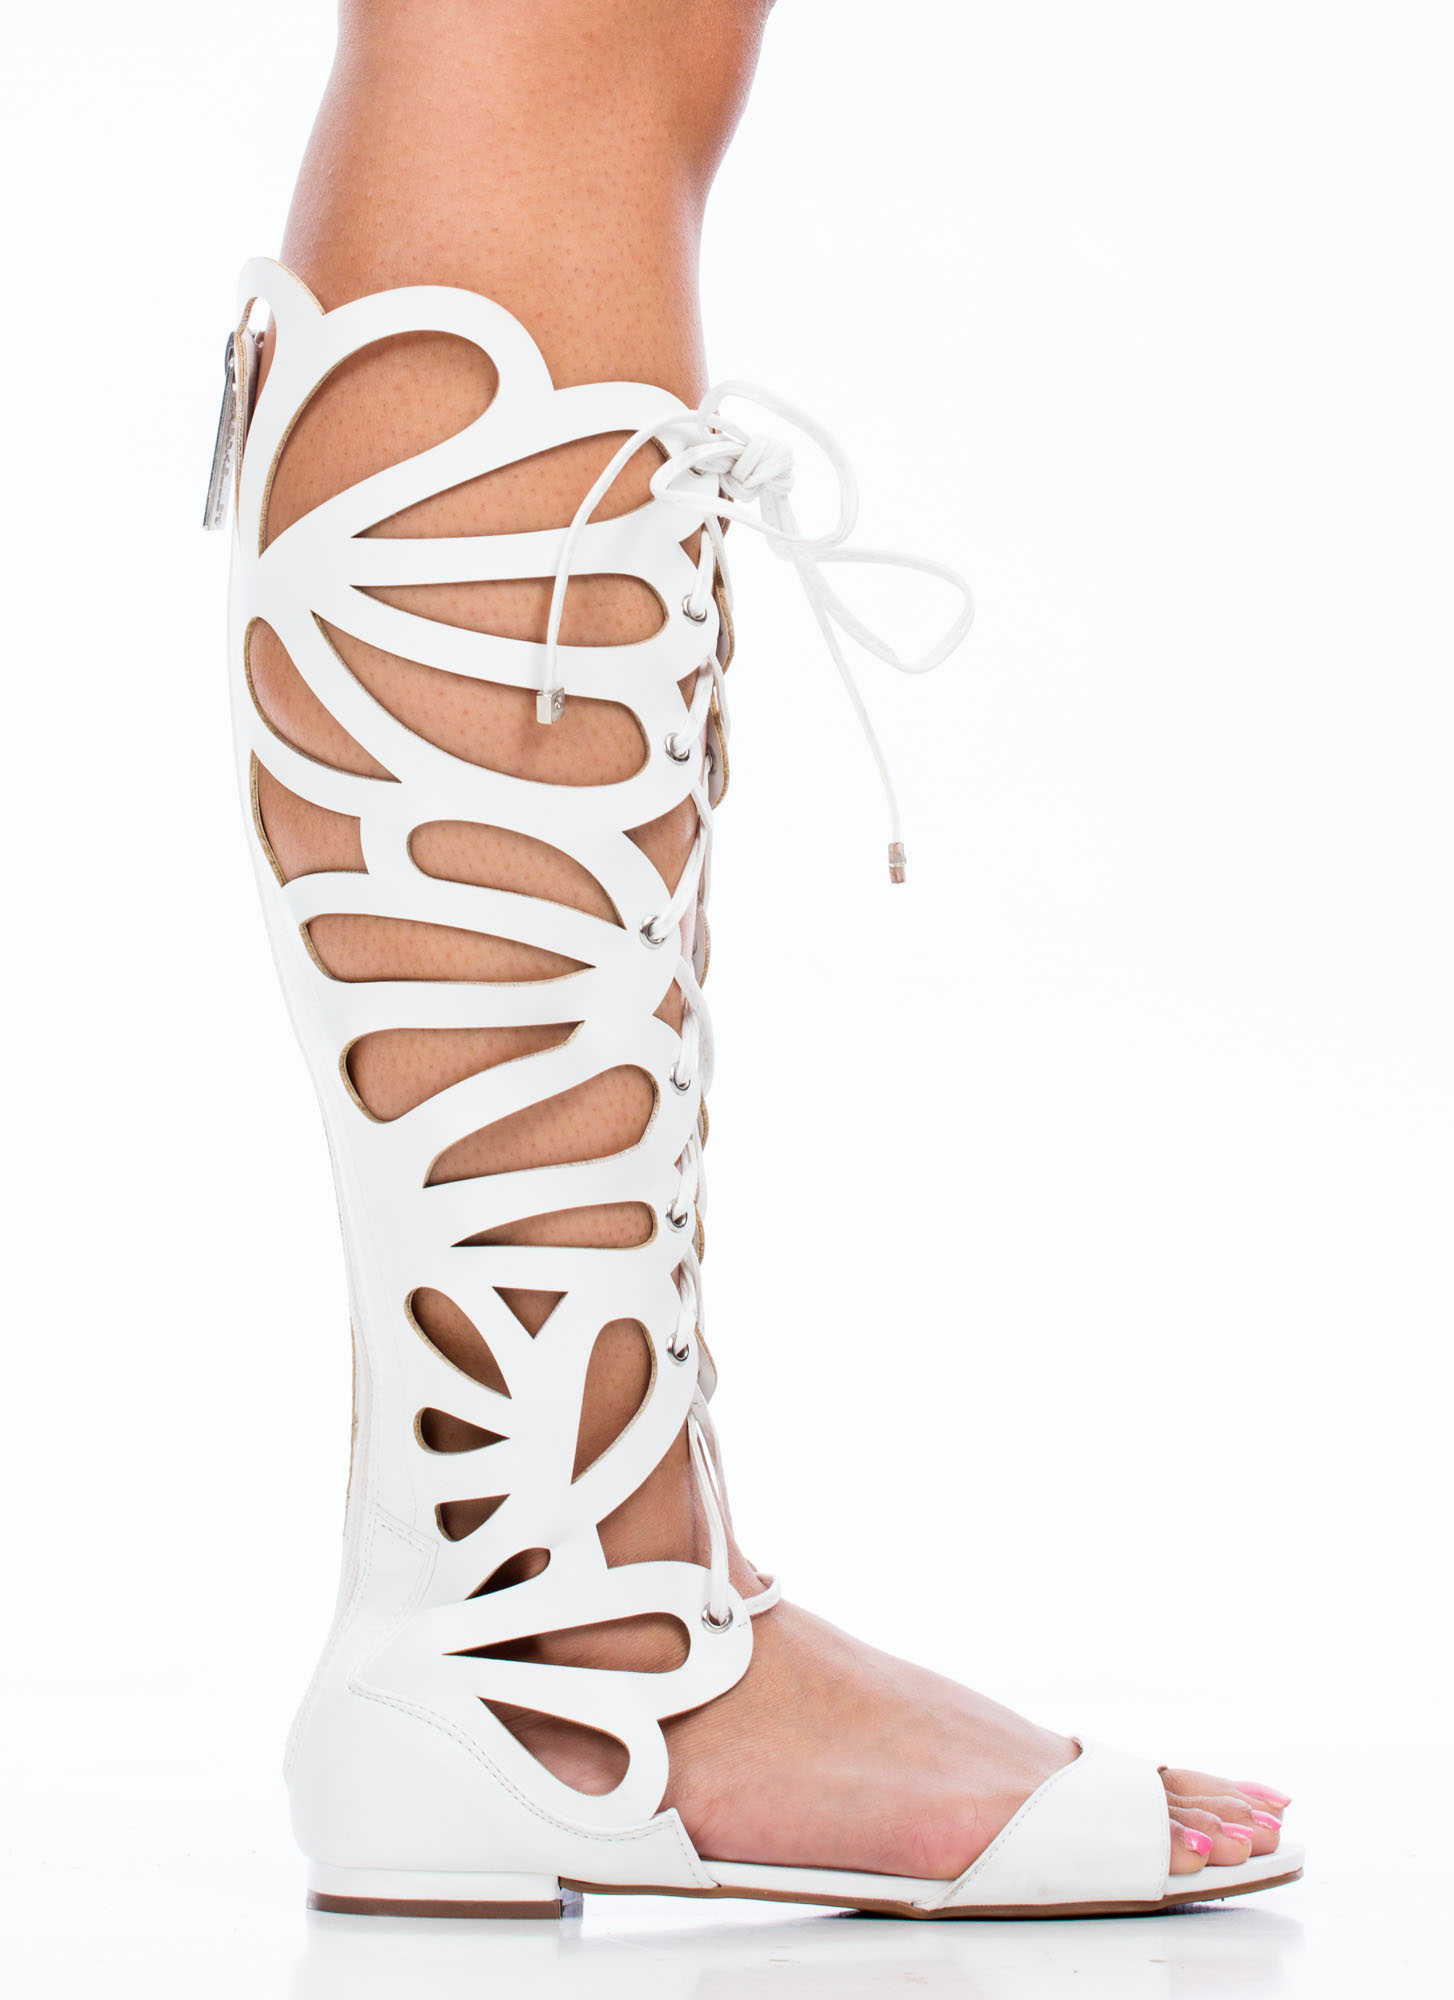 27415c4fb723 Teardrop Cut-Out Gladiator Sandals WHITE GREY TAN GUN RED - GoJane